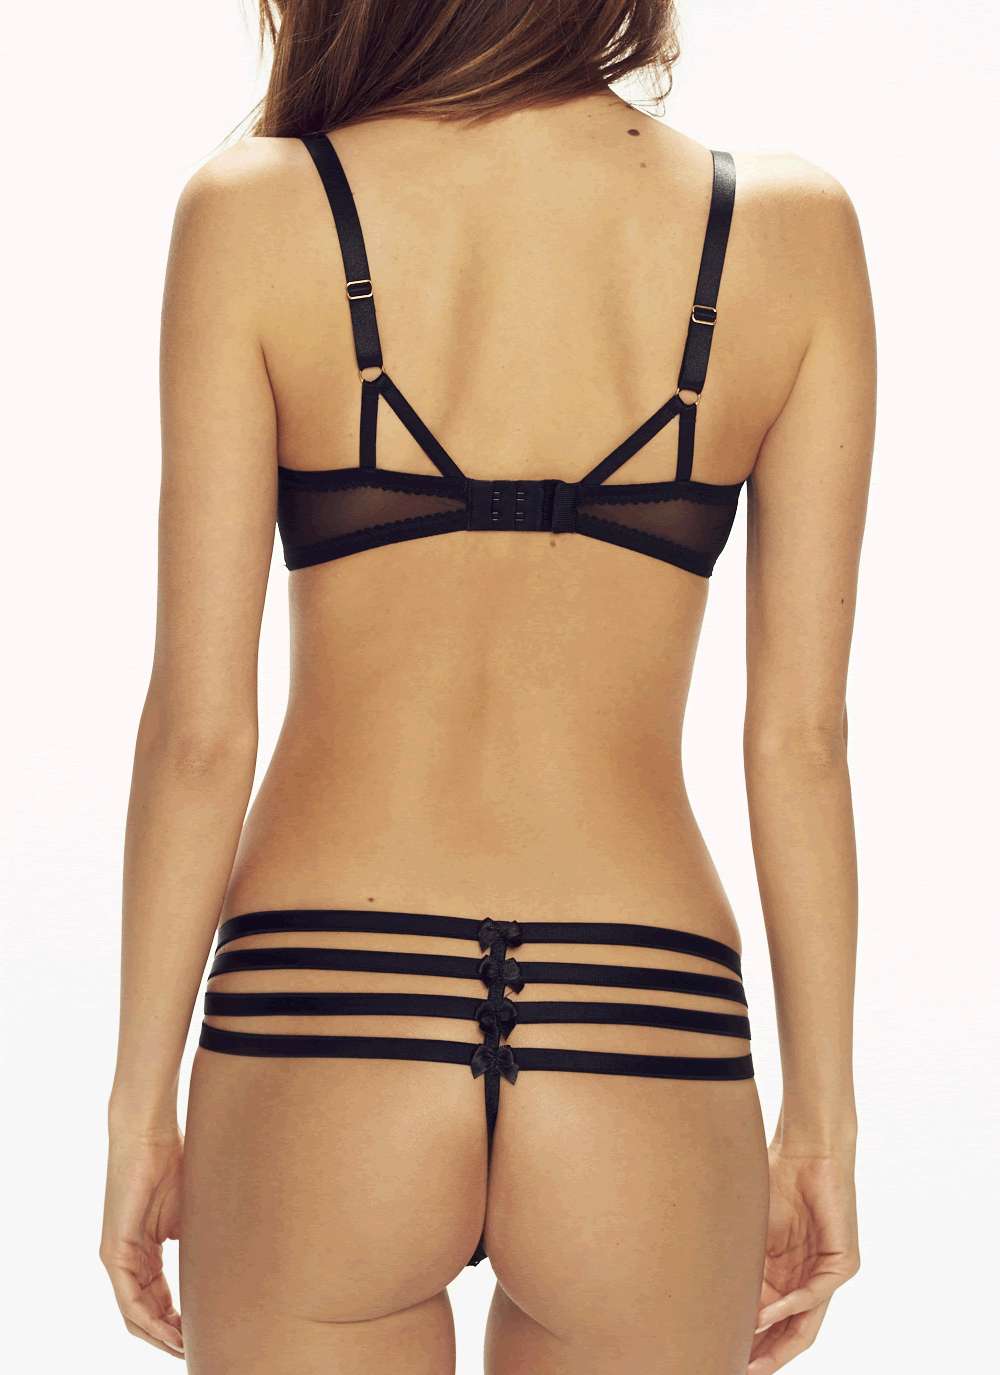 Stardust Strappy Tanga Panty